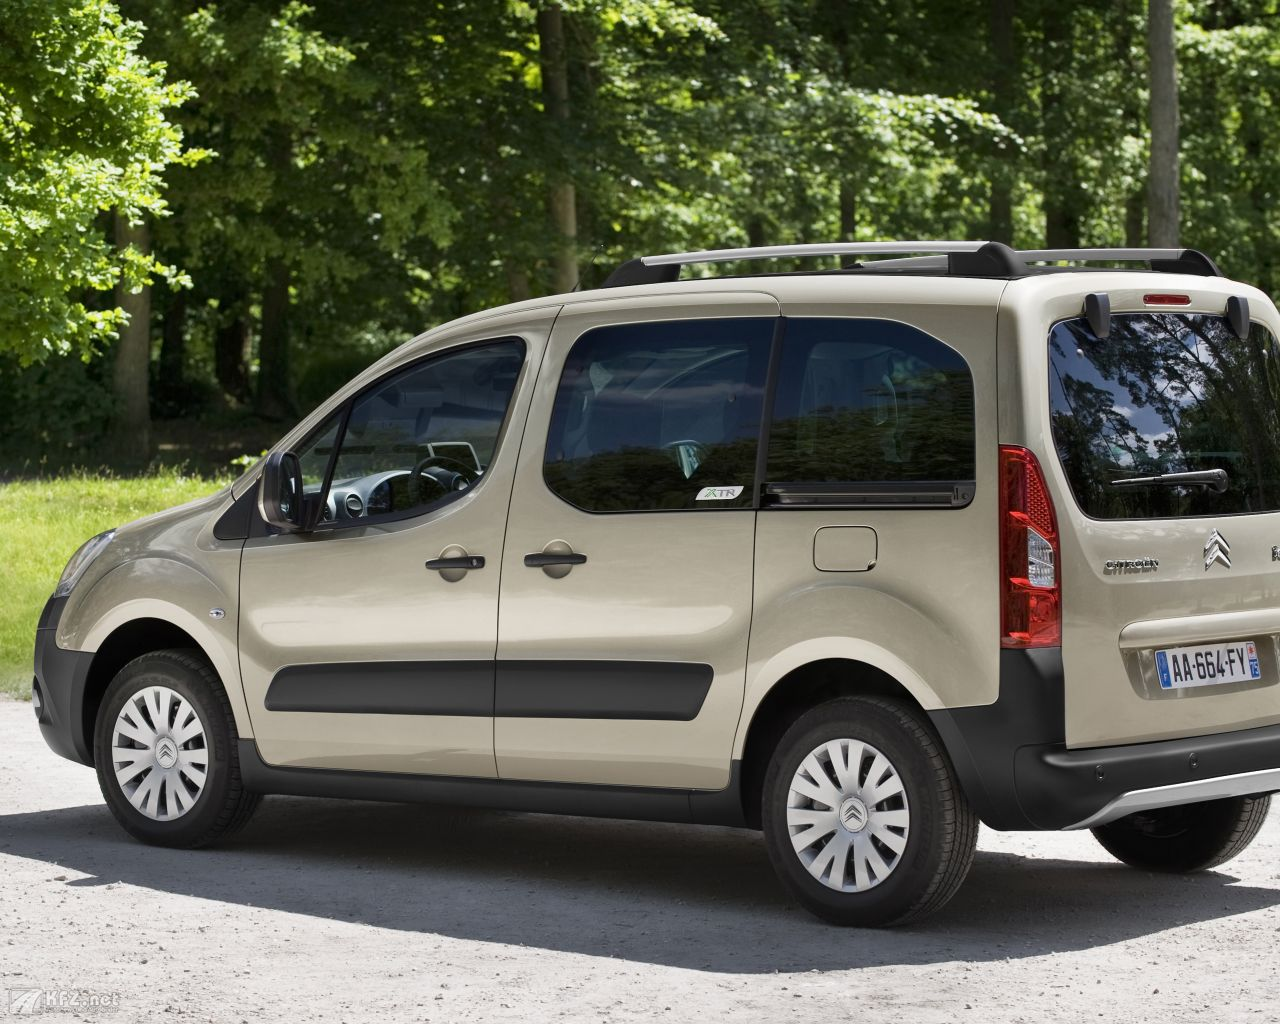 citroen-berlingo-1280x1024-121